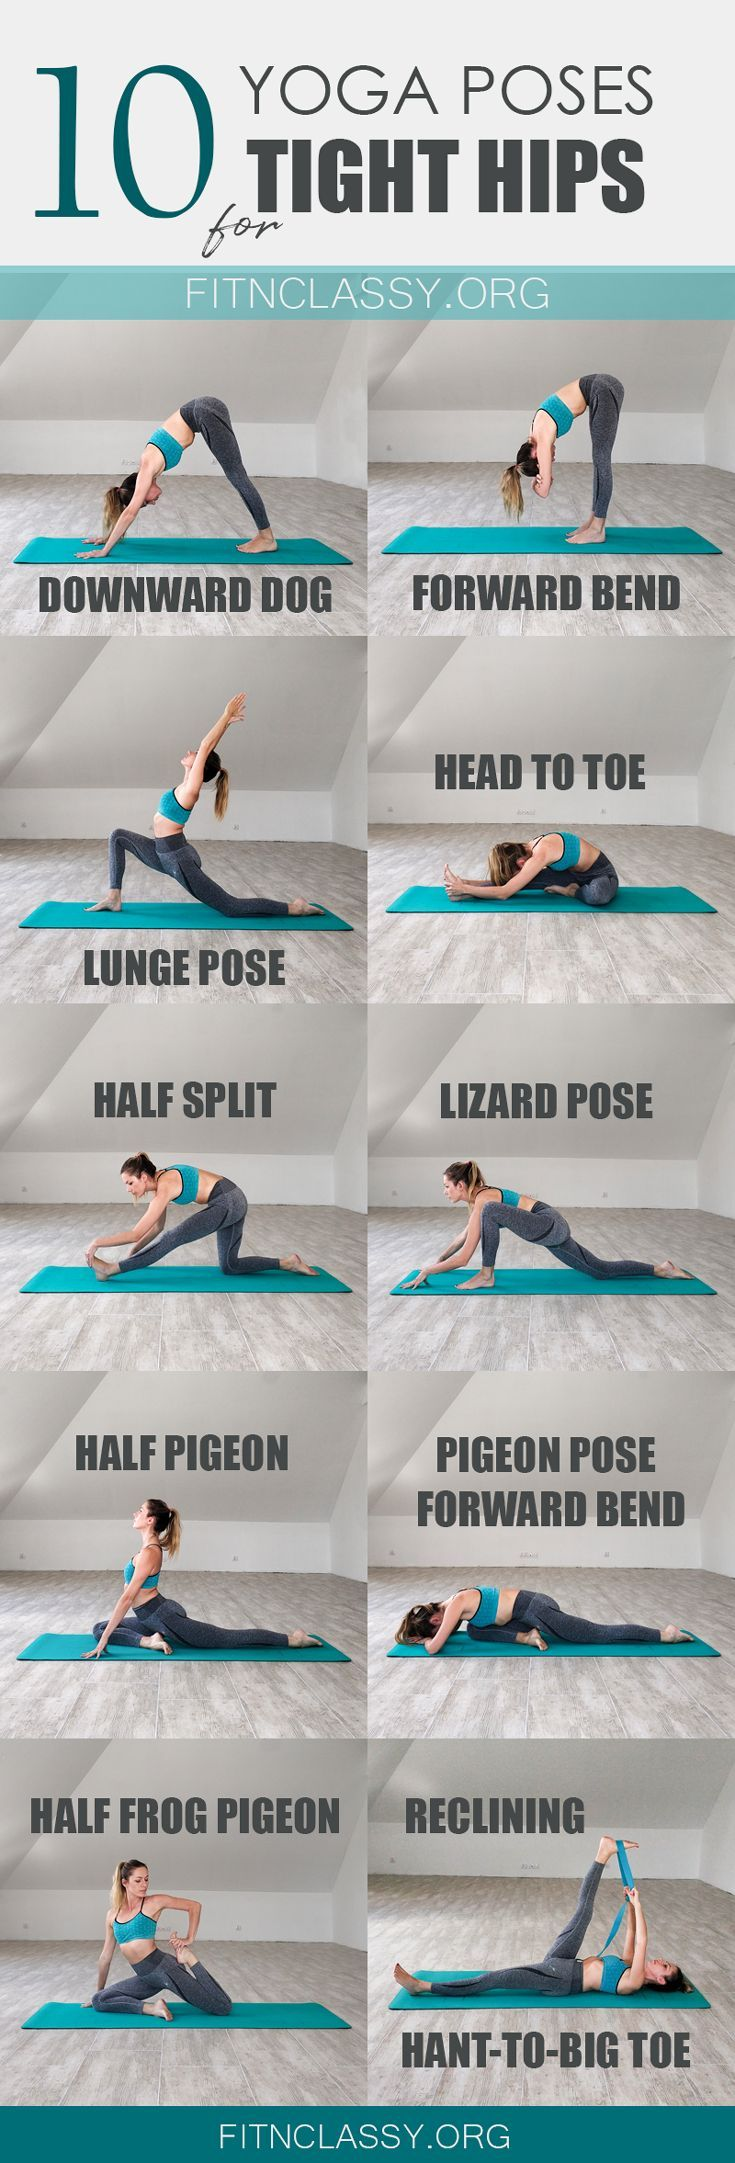 10 Yoga Poses For Tight Hips & Hamstrings – Fit & Classy